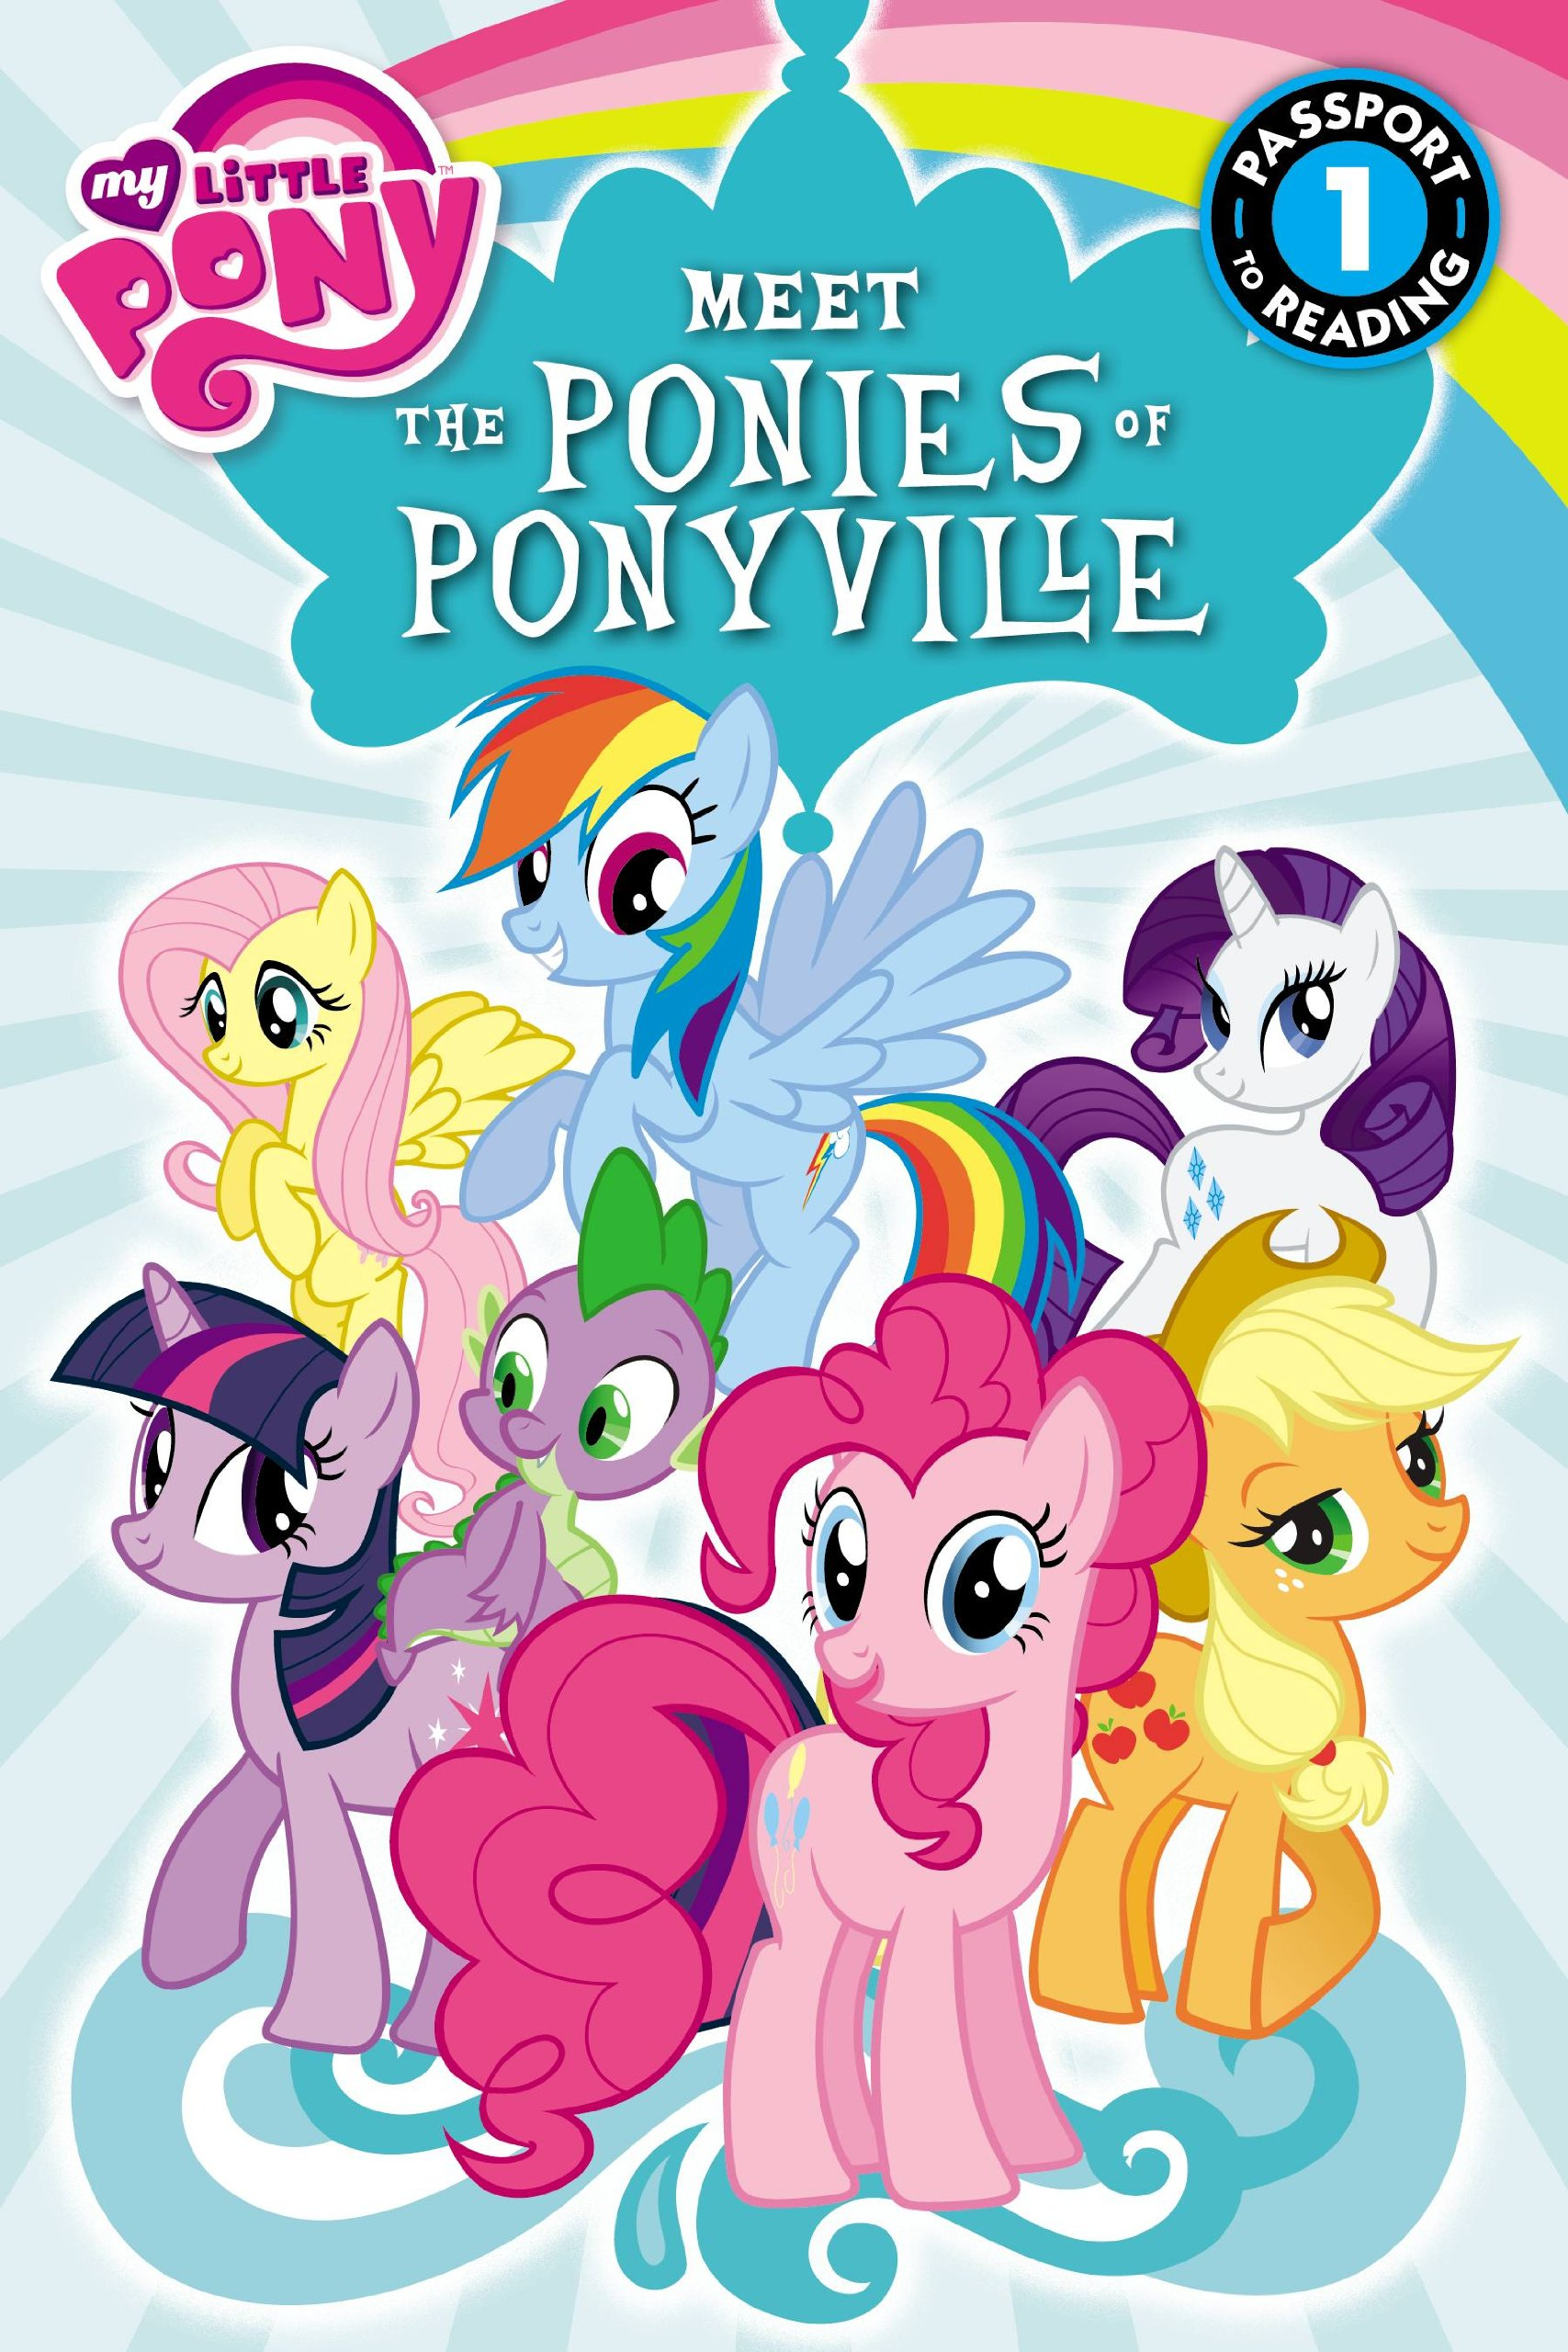 - My Little Pony: Meet The Ponies Of Ponyville (Passport To Reading